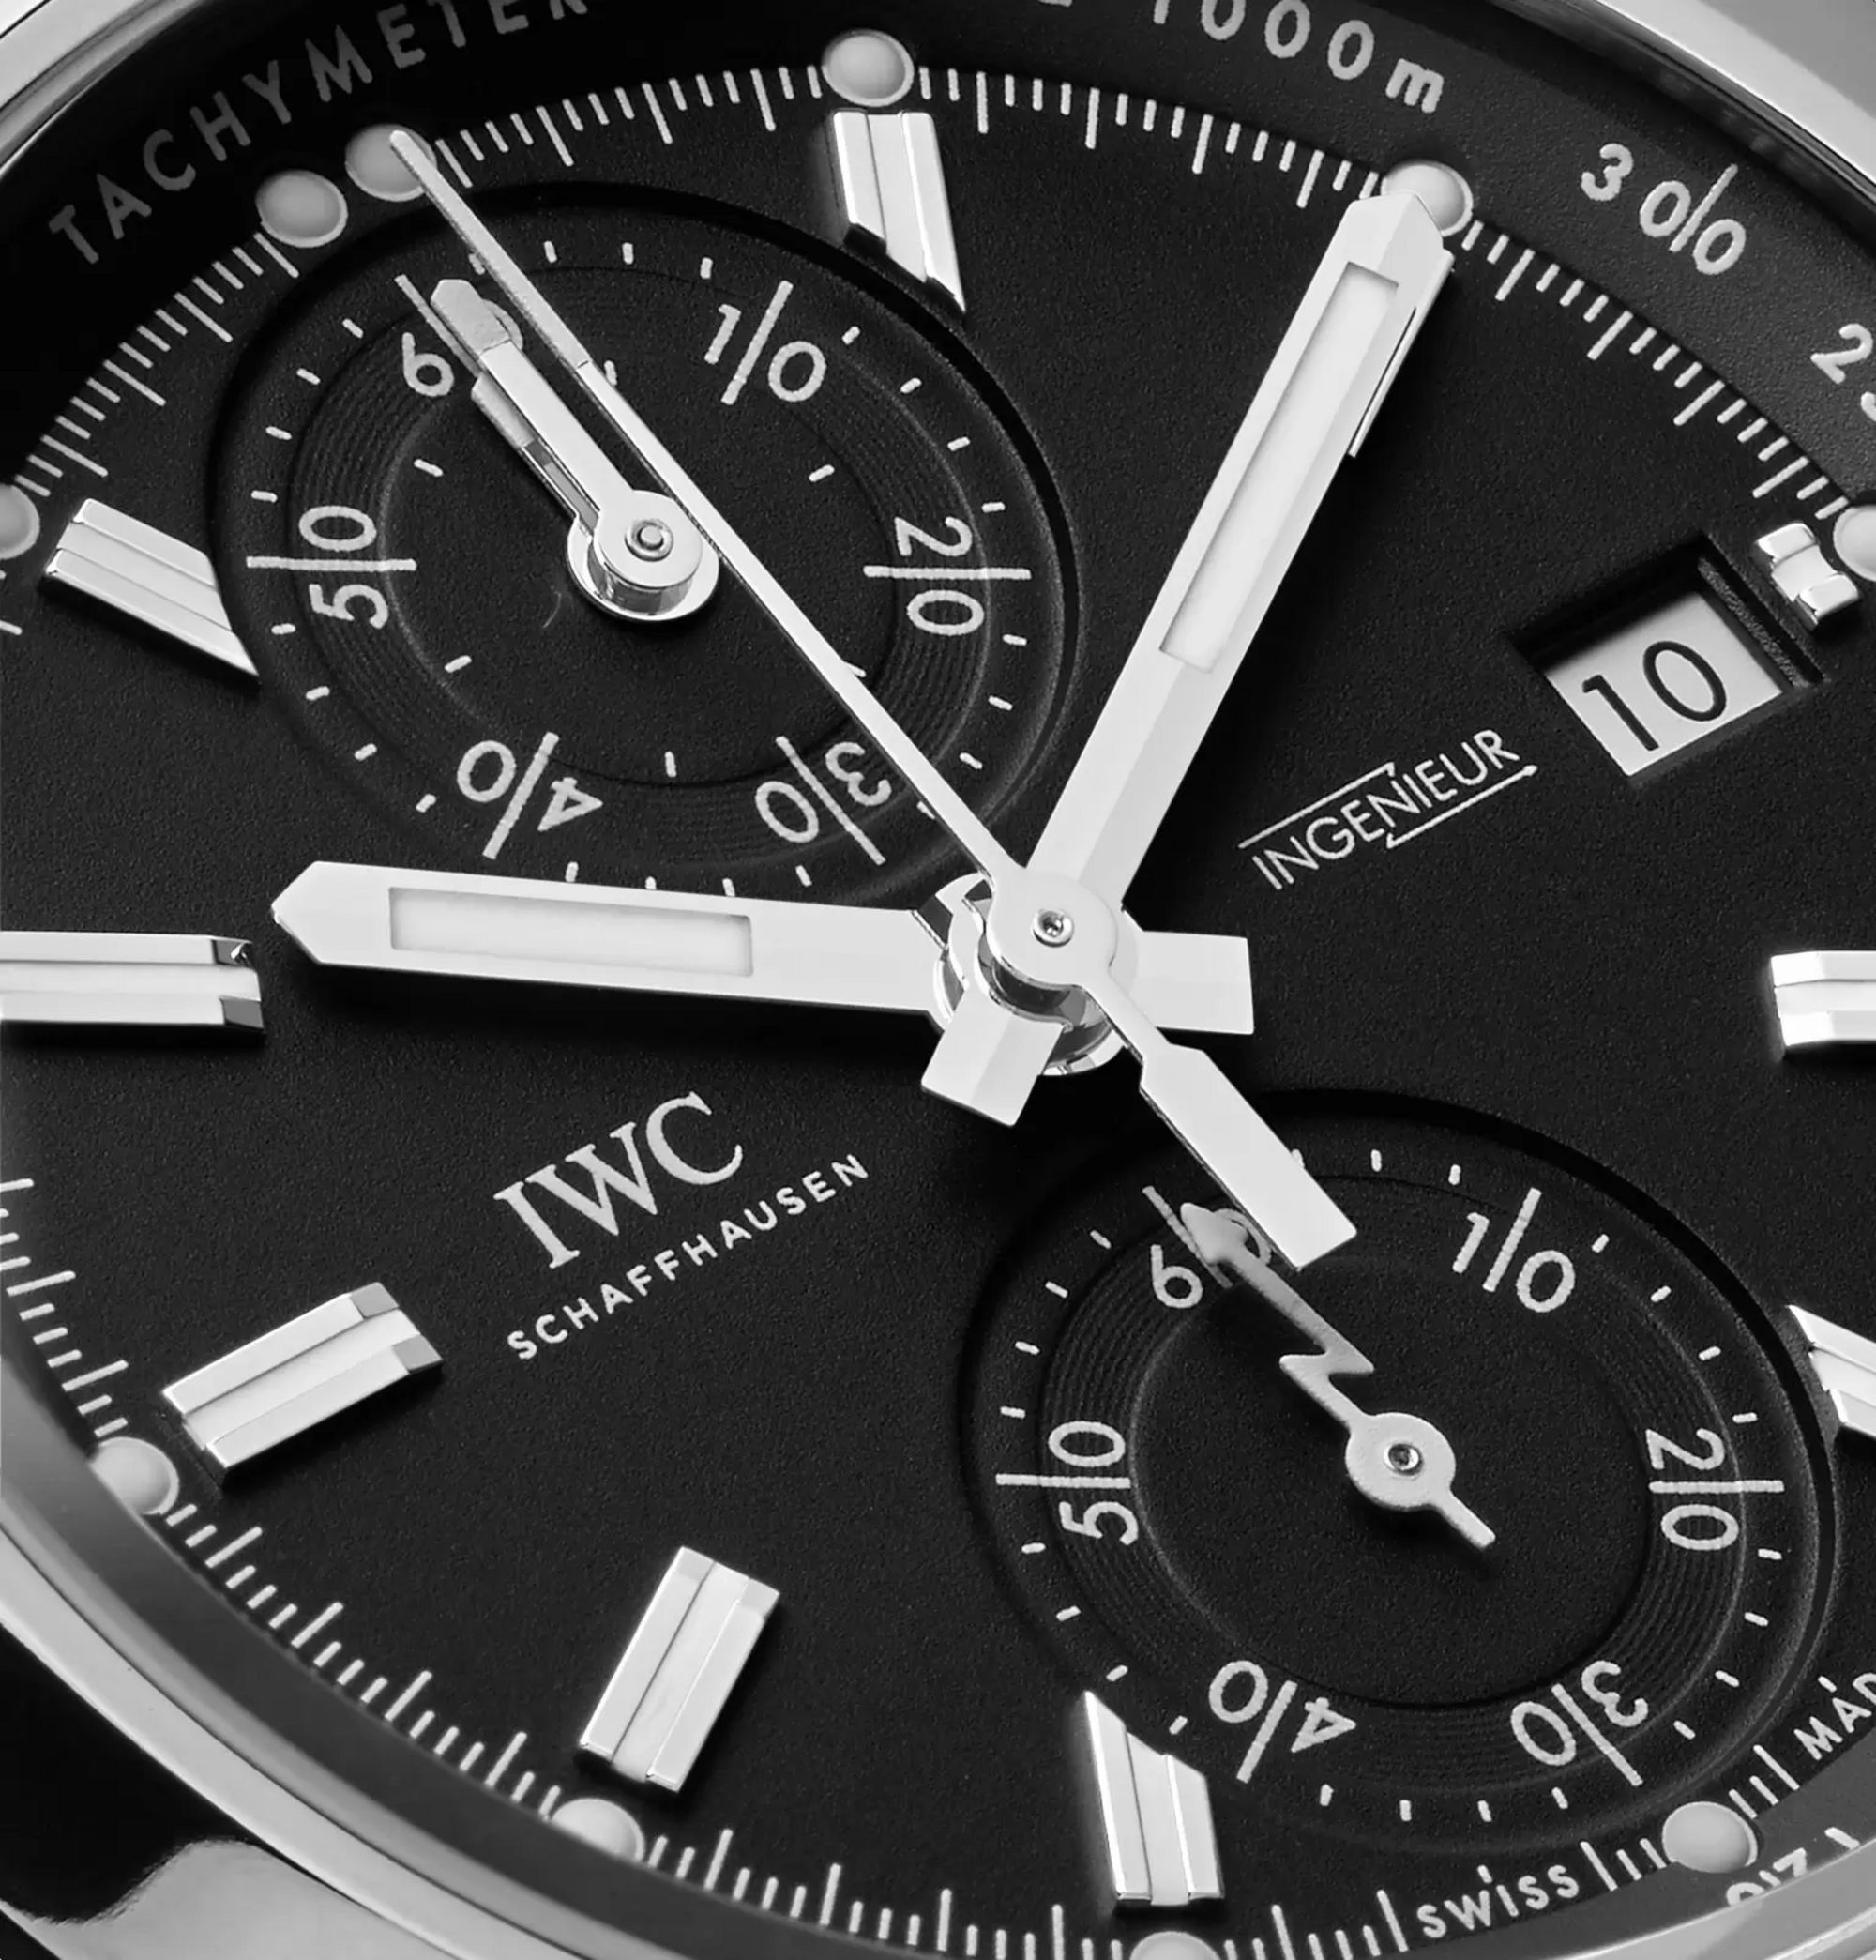 IWC SCHAFFHAUSEN Ingenieur Chronograph Sport 44mm Titanium and Leather Watch, Ref. No. IW380901